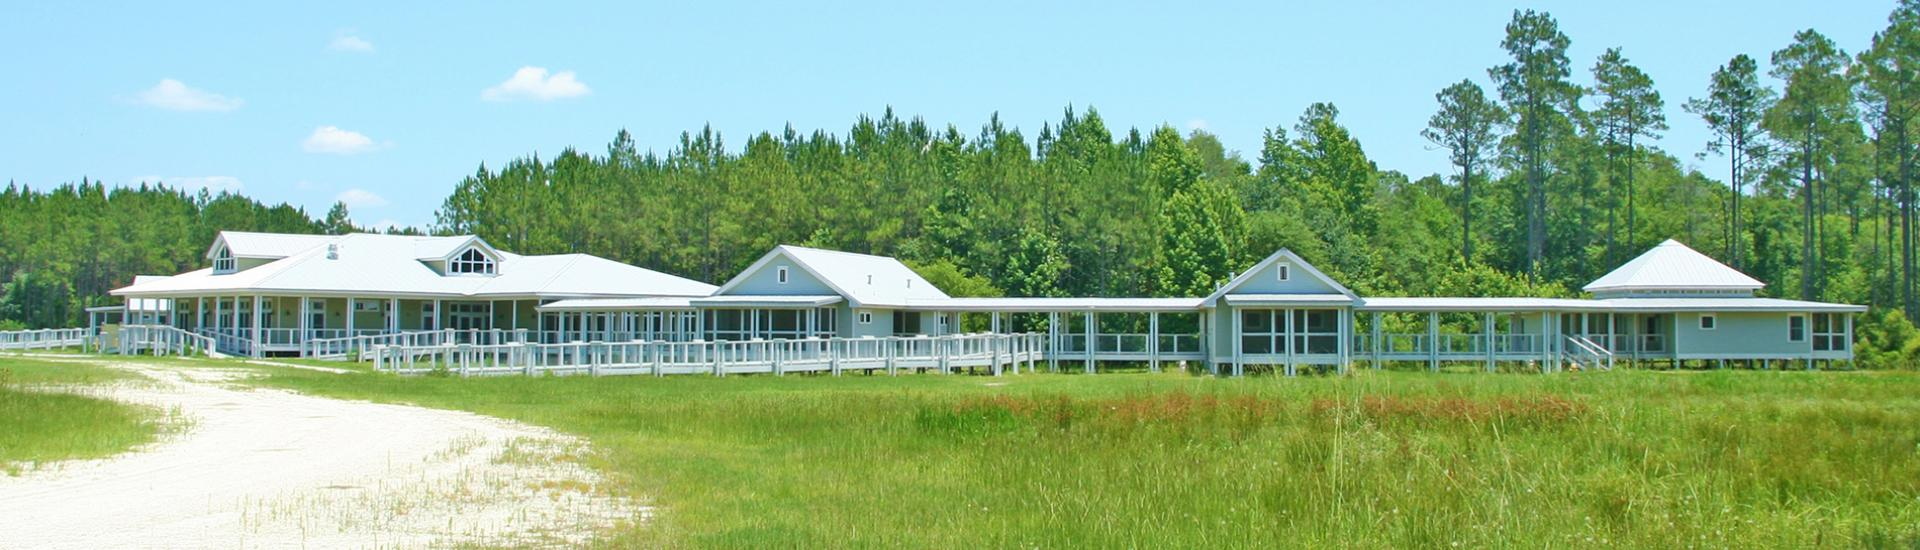 Suwannee River Eco-Lodge